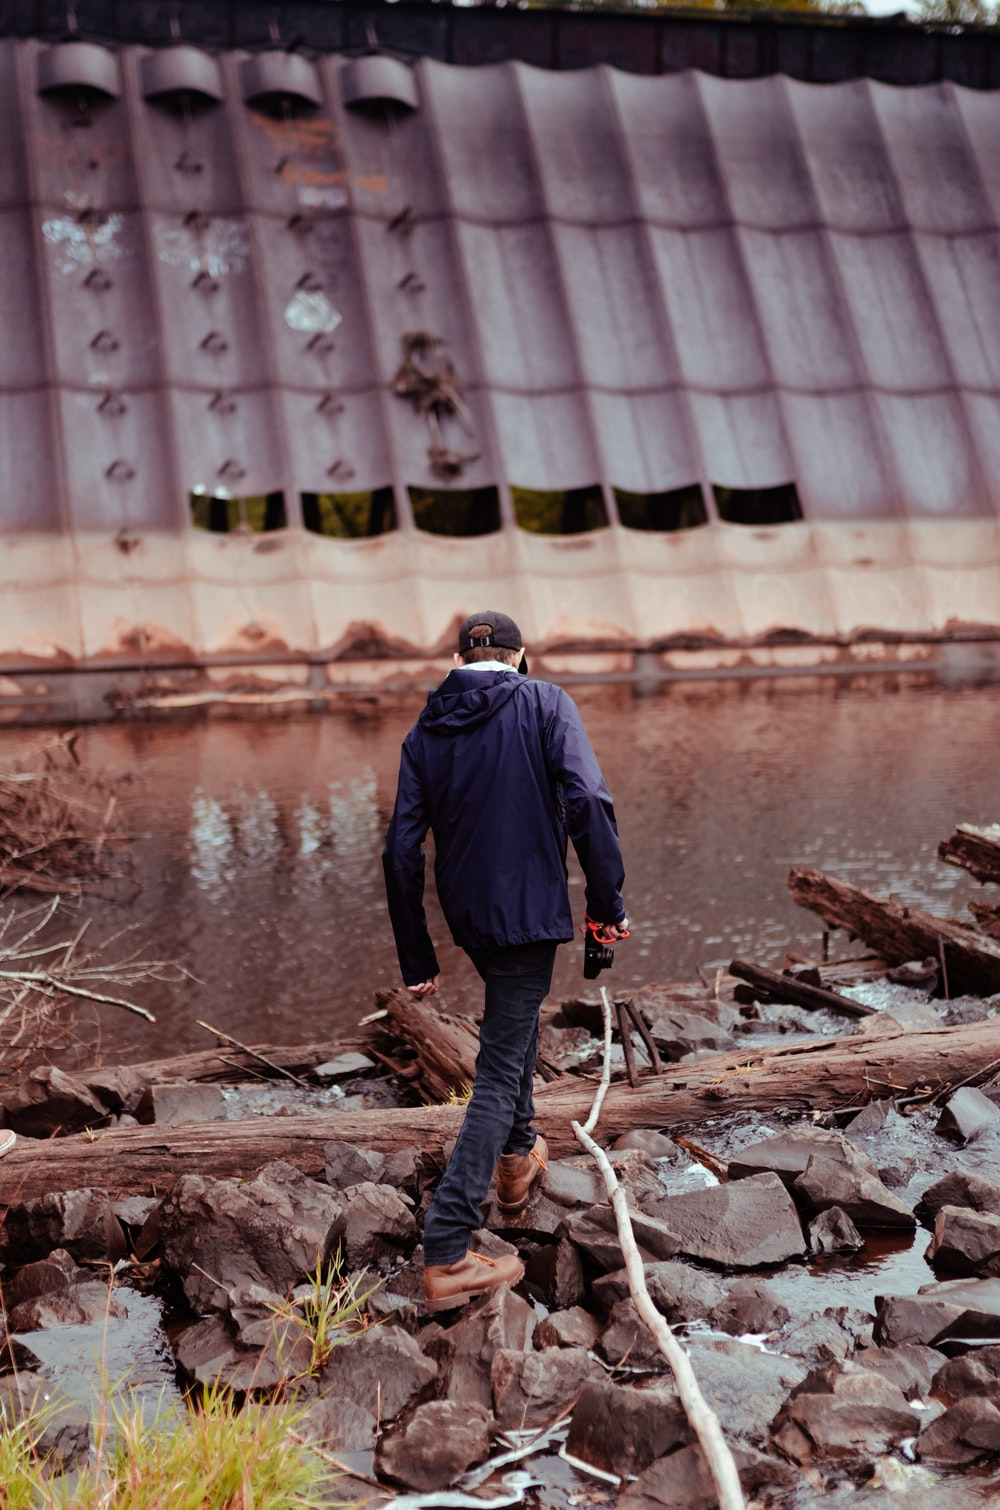 man in blue jacket and black pants standing on brown wood log near body of water